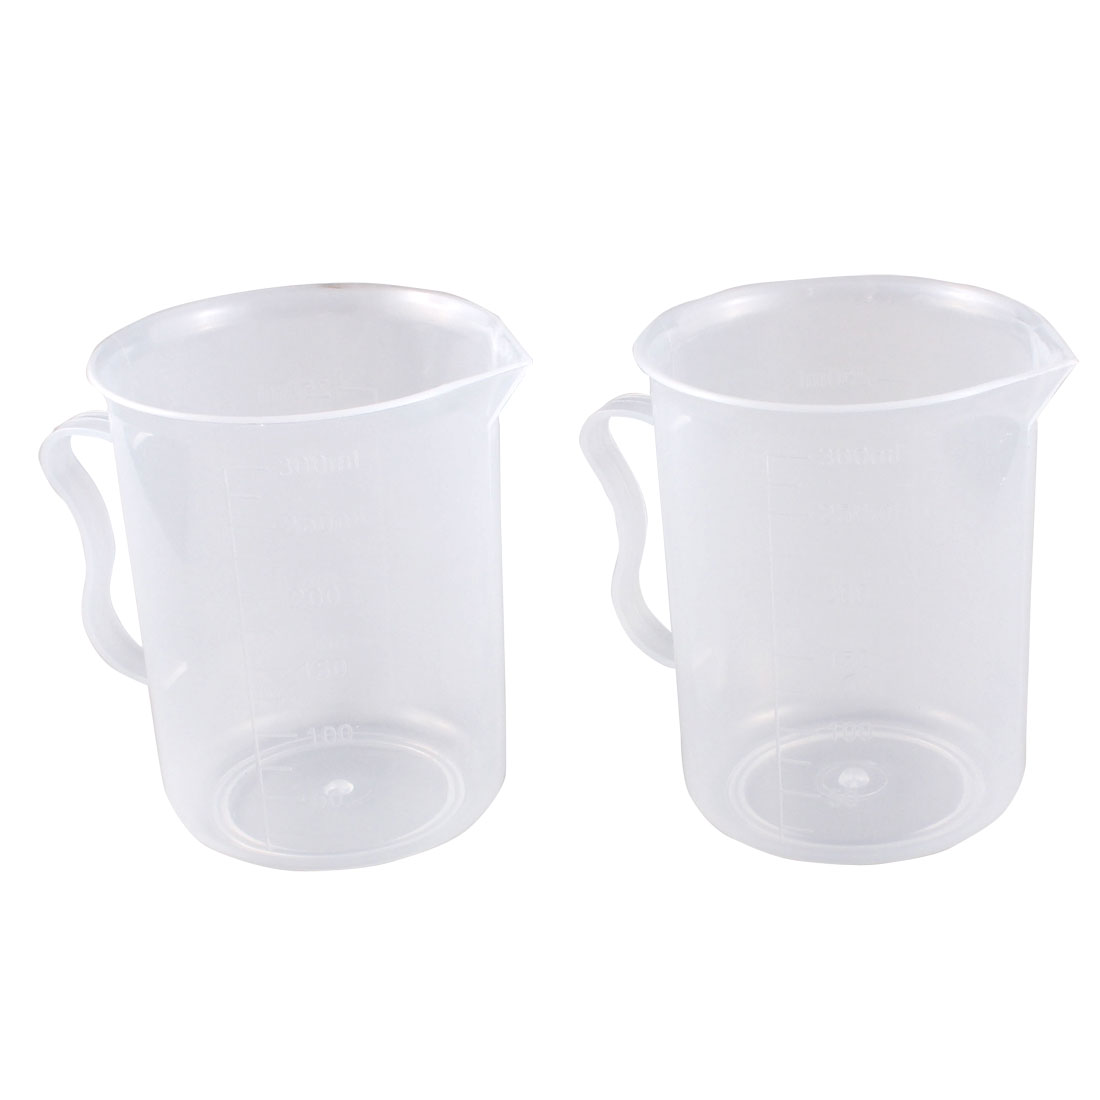 2pcs 300ml Clear Plastic Handle Graduated Beaker Measuring Cups Container